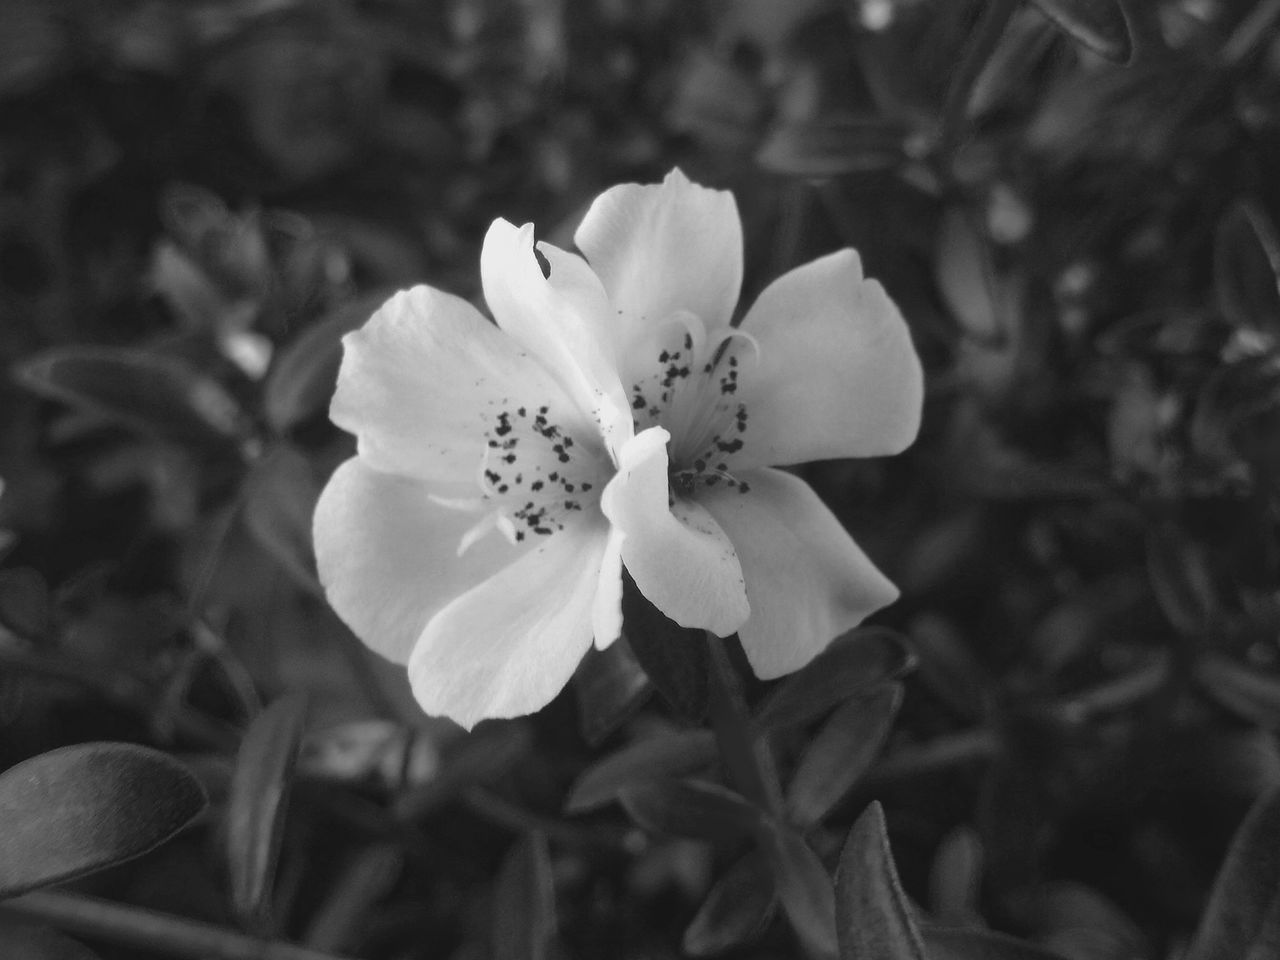 Blackandwhite Monochrome Flower Head Beauty In Nature Flower Close-up Nature Outdoors Shootermag Walkside Taking Photos Still Life Check This Out From My Point Of View Walking Around Fine Art Photography Mobilephotography Beauty In Nature Duet